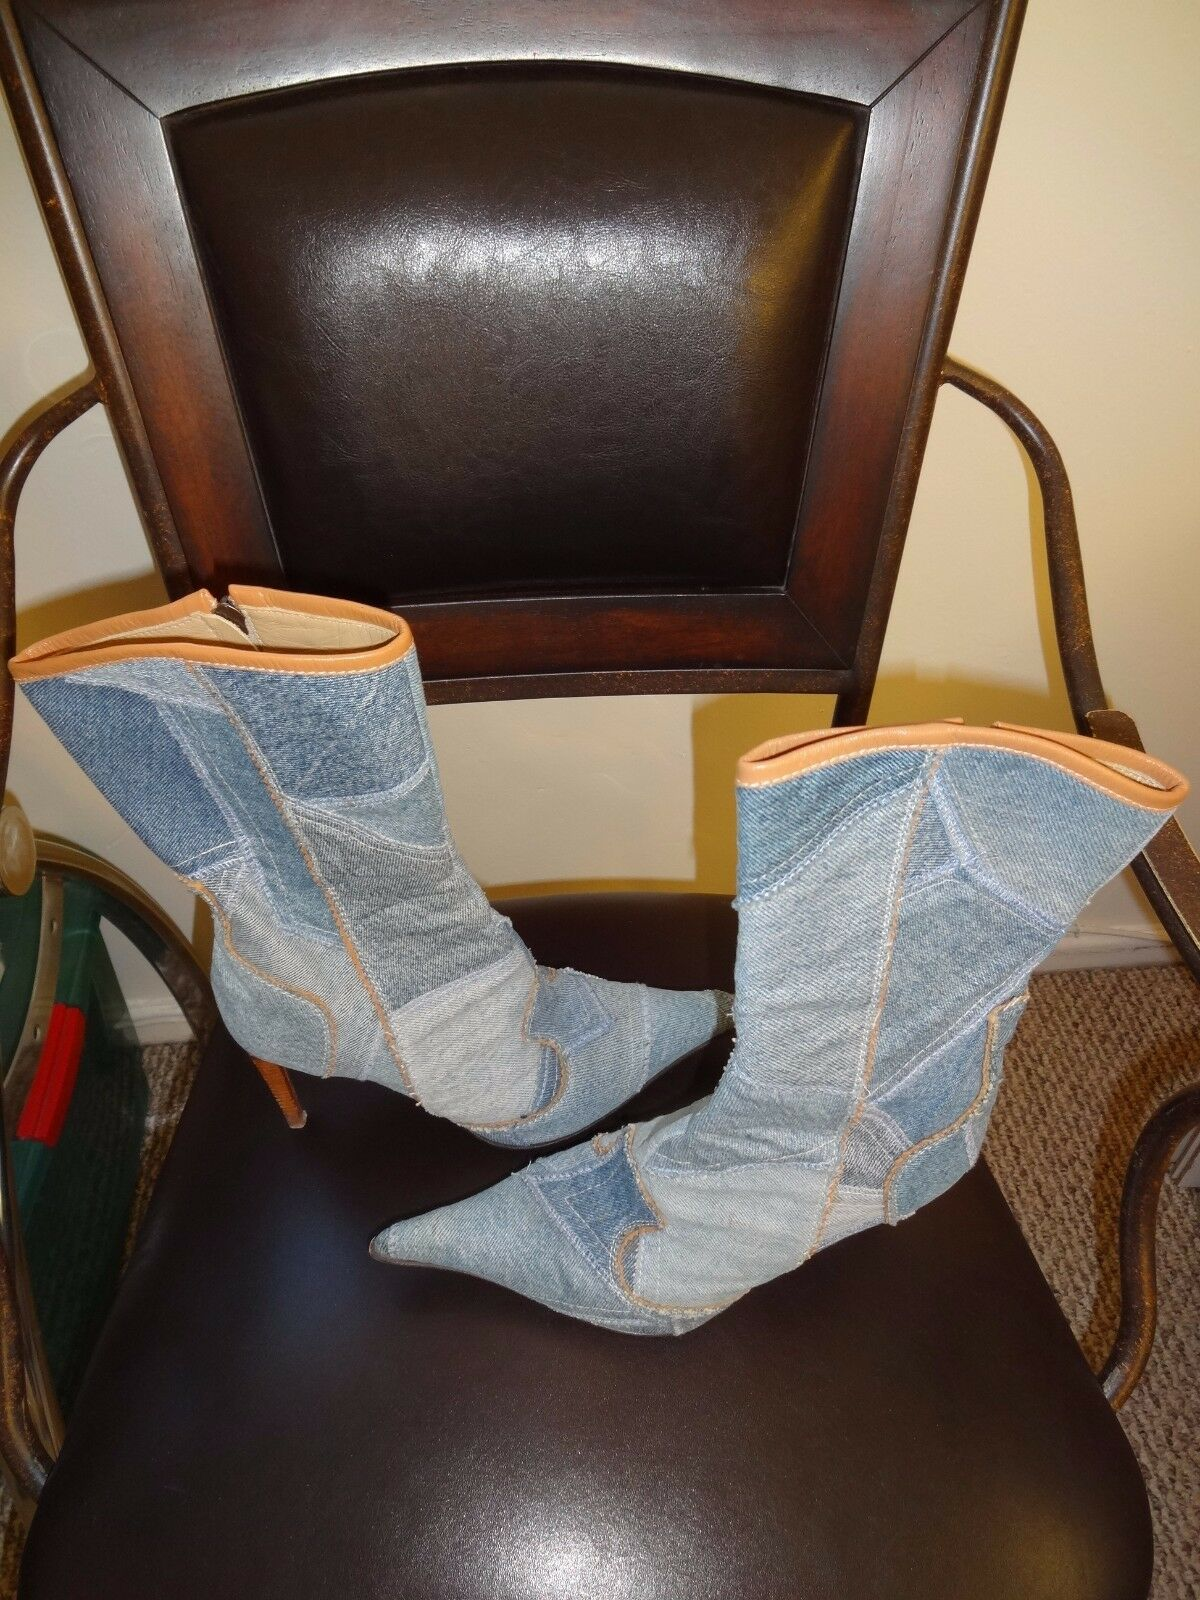 NWOB LE SILLA ITALY DENIM PATCHWORK BOOTS BOOTS BOOTS 37 6df1cb